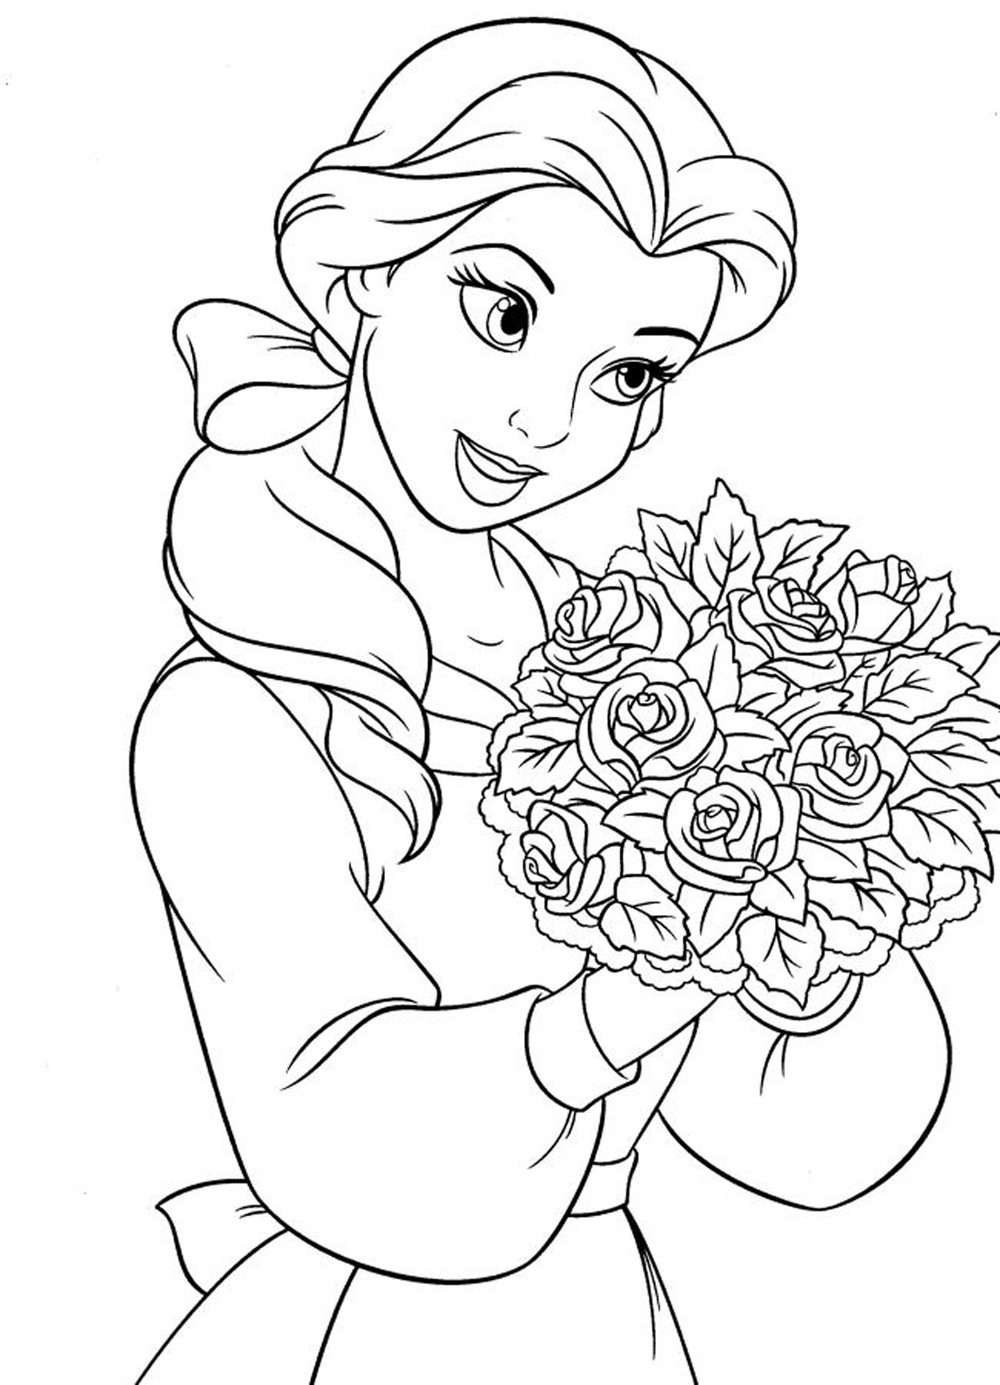 free coloring disney pages | Disney Princess Tiana Coloring Page | Disney | Pinterest